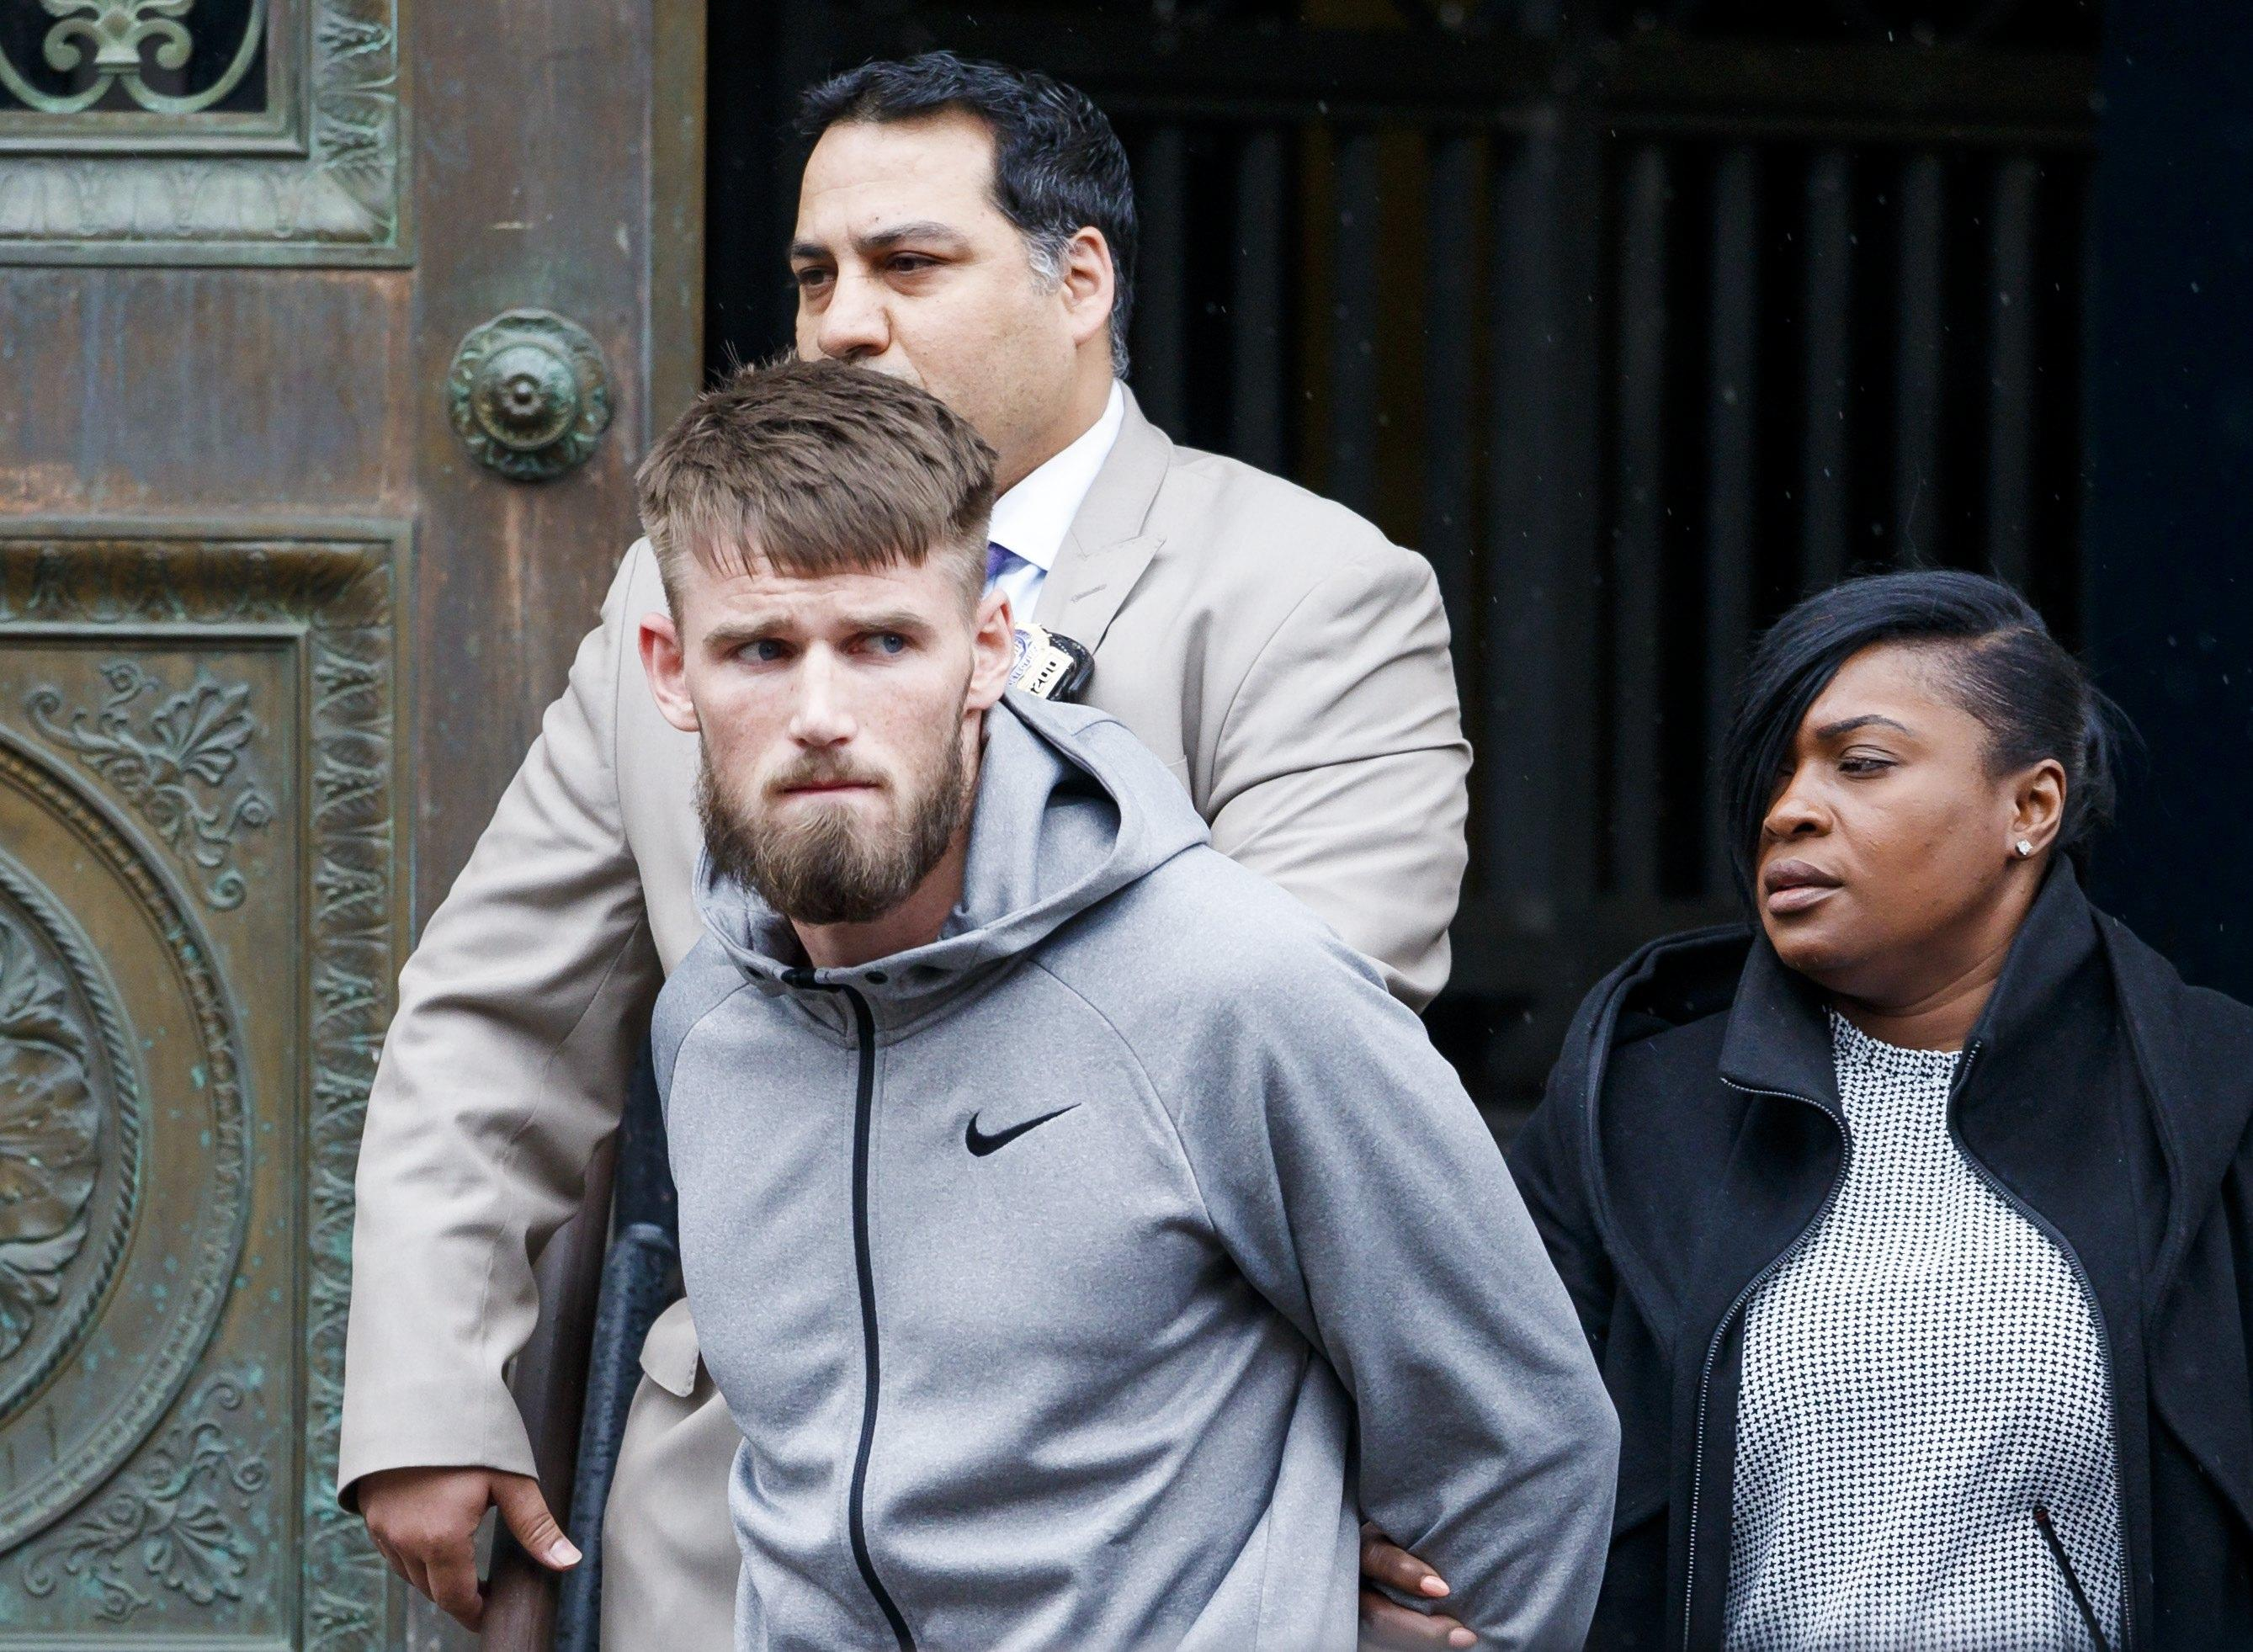 McGregor's teammate Cian Cowley was also seen being taken from the police station